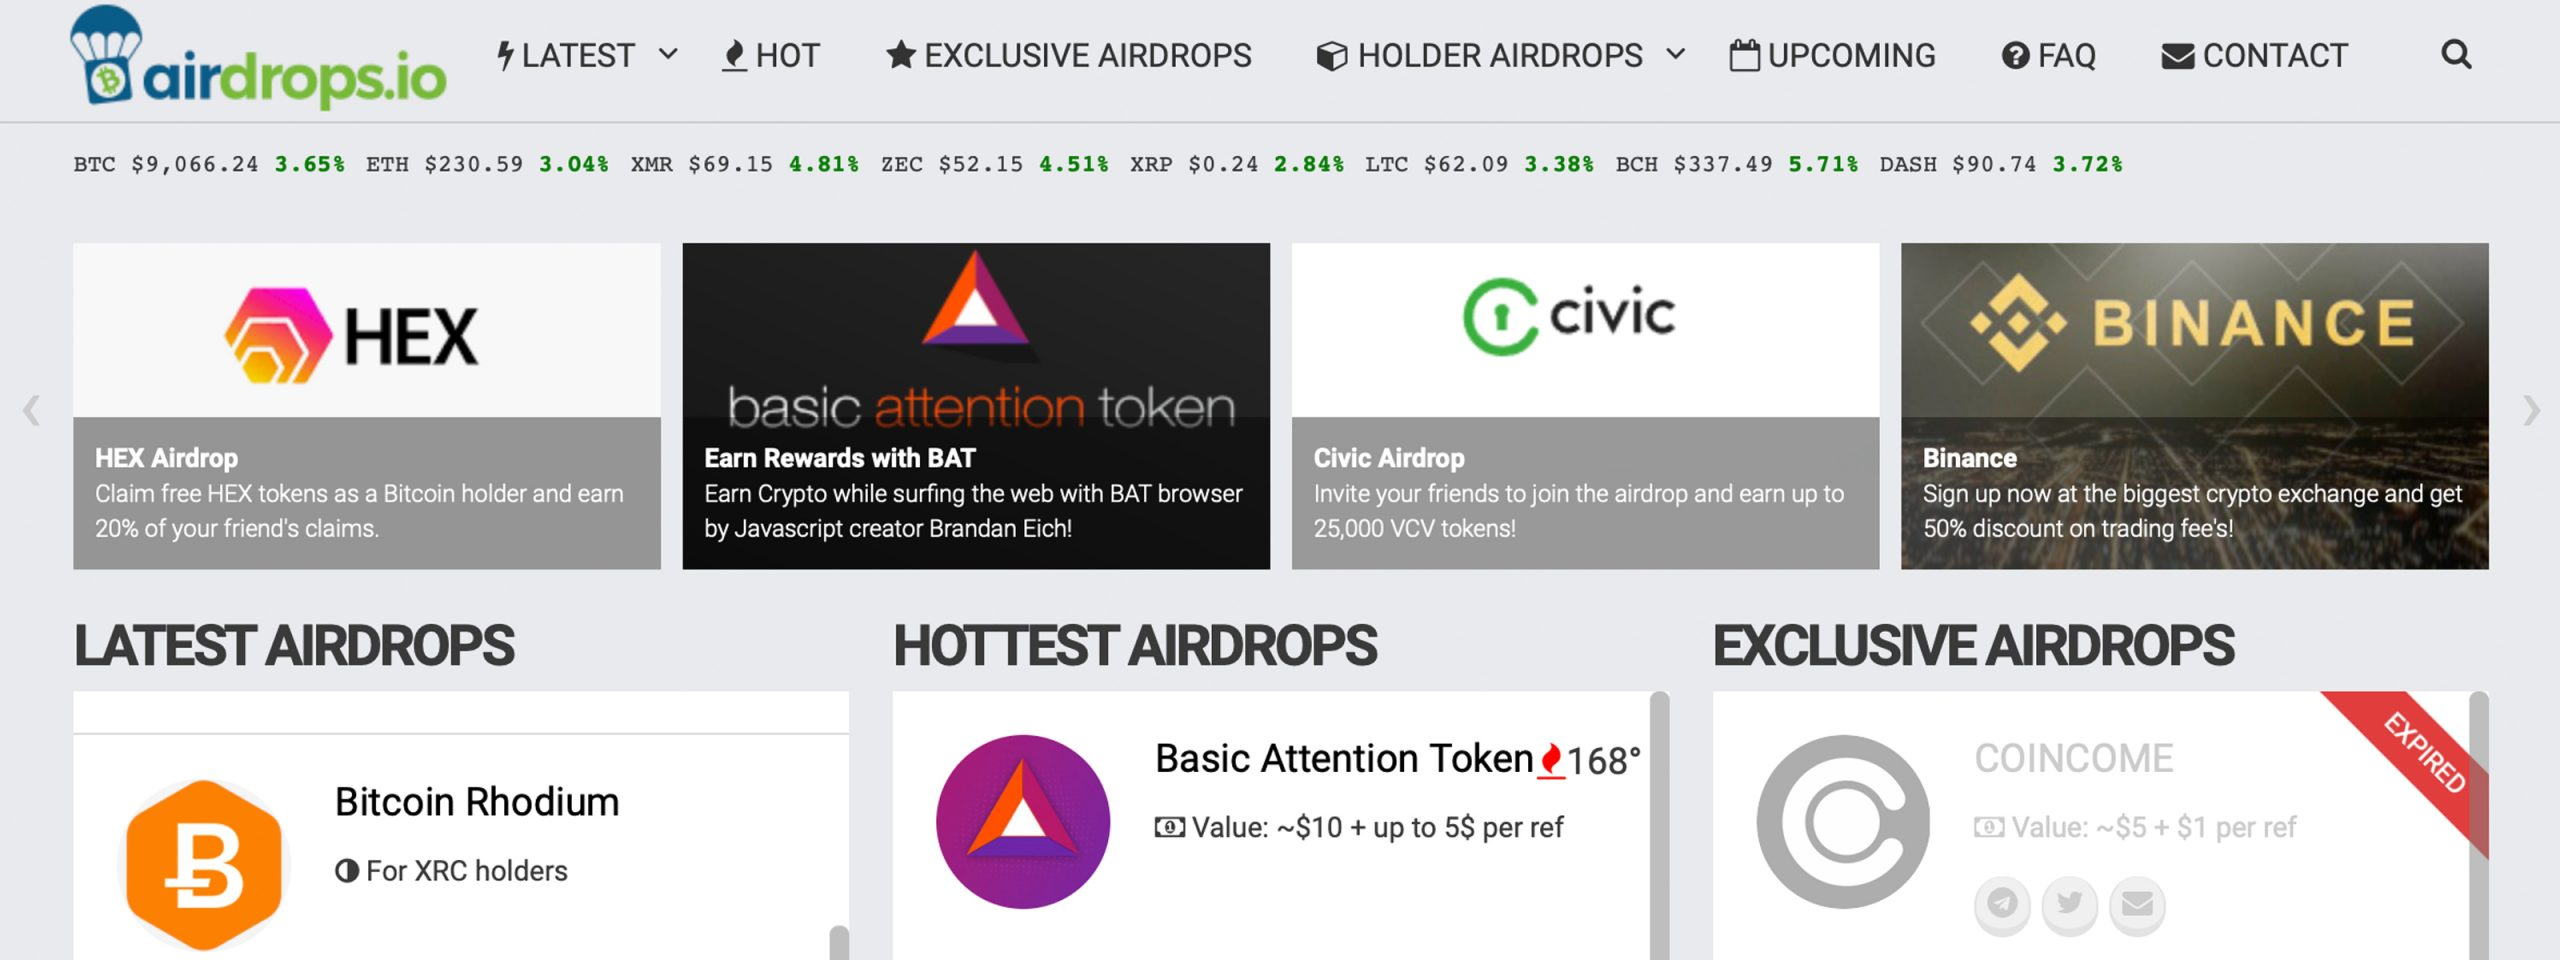 """Cryptocurrency Airdrops and Giveaways: What are are and What's next """"width ="""" 2560 """"height ="""" 960 """"srcset ="""" https://blackswanfinances.com/wp-content/uploads/2020/03/airdopsio-scaled.jpg 2560w, https://news.bitcoin.com/wp-content/uploads/2020/ 03 / airdopsio-300x113.jpg 300w, https://news.bitcoin.com/wp-content/uploads/2020/03/airdopsio-1024x384.jpg 1024w, https://news.bitcoin.com/wp-content/ uploads / 2020/03 / airdopsio-768x288.jpg 768w, https://news.bitcoin.com/wp-content/uploads/2020/03/airdopsio-1536x576.jpg 1536w, https://news.bitcoin.com/ wp-content / uploads / 2020/03 / airdopsio-2048x768.jpg 2048w, https://news.bitcoin.com/wp-content/uploads/2020/03/airdopsio-696x261.jpg 696w, https: // noticias. bitcoin.com/wp-content/uploads/2020/03/airdopsio-1392x522.jpg 1392w, https://news.bitcoin.com/wp-content/uploads/2020/03/airdopsio-1068x401.jpg 1068w, https: //news.bitcoin.com/wp -content / uploads / 2020/03 / airdopsio-1120x420.jpg 1120w, https://news.bitcoin.com/wp-content/uploads/2020/03/airdopsio-1920x720.jpg 1920w """"tamaños ="""" (ancho máximo : 2560px) 100vw, 2560px"""